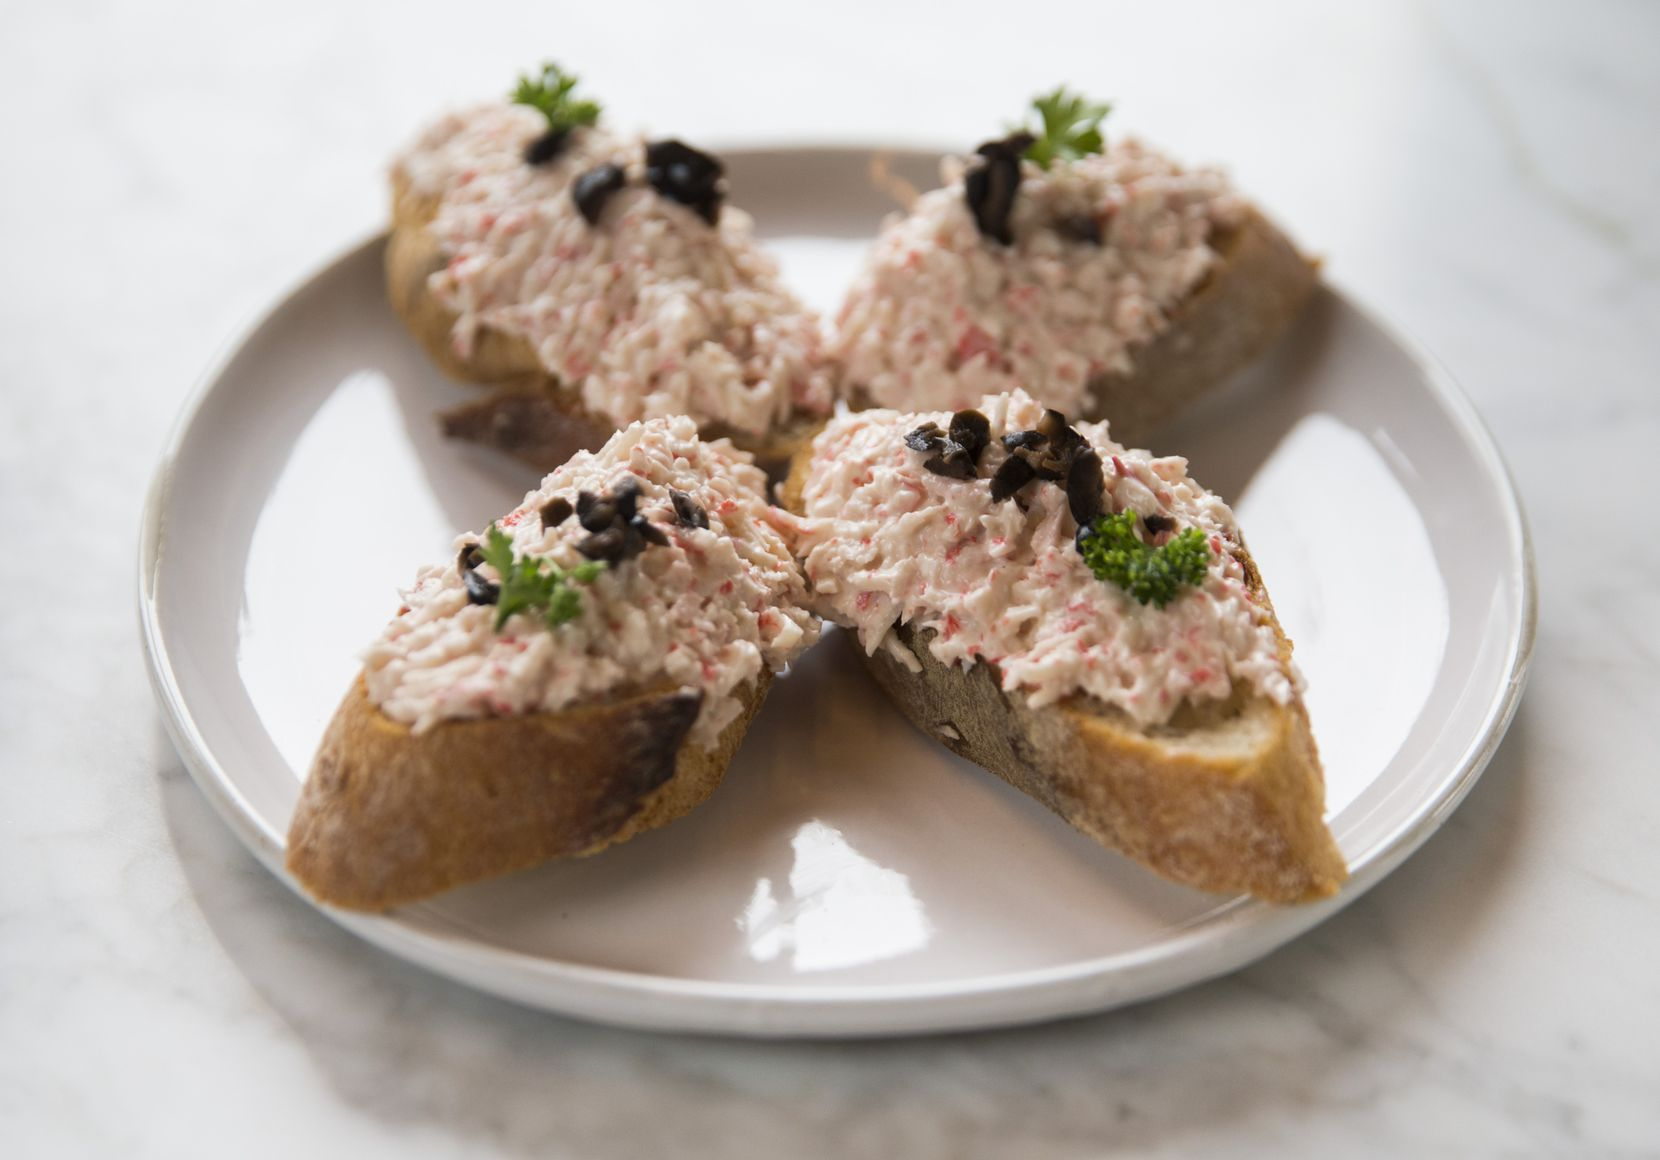 """""""Txaka,"""" or imitation crab salad on baguette slices, at Sketches of Spain"""